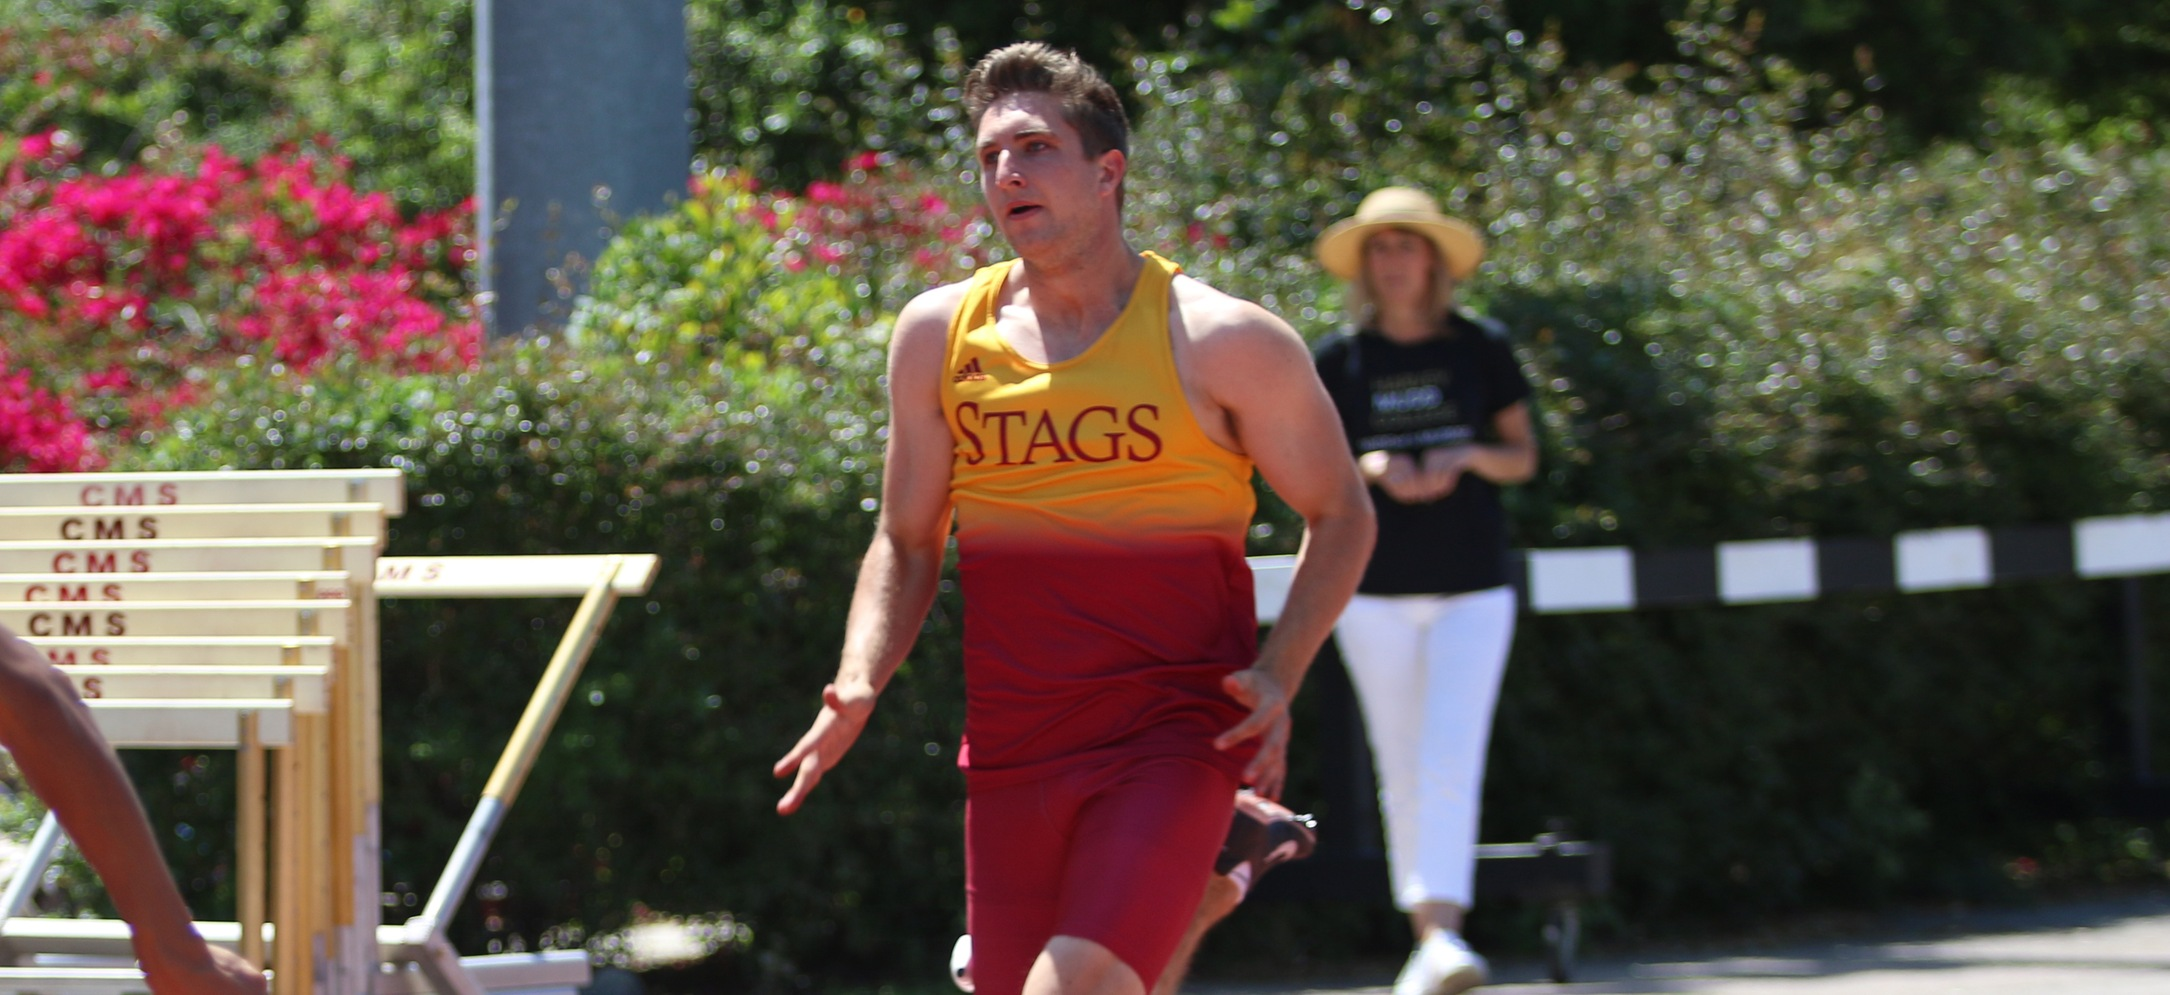 Connor Schulz (CMC) placed fifth in the decathlon. (photo credit: Alisha Alexander)